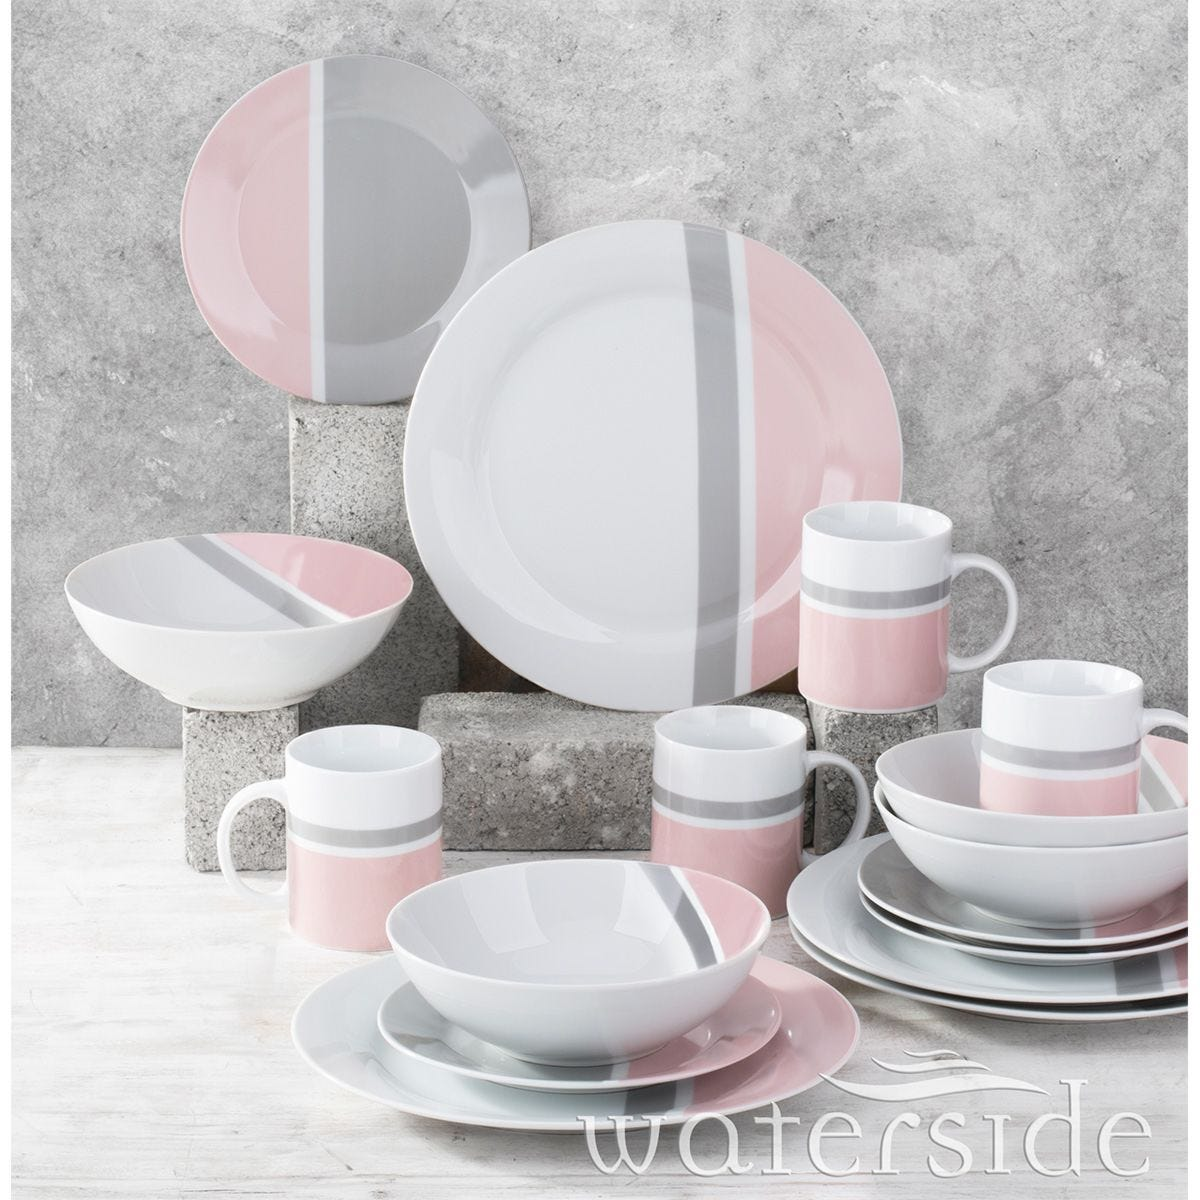 The Waterside 16pc Lulu Blush Pink and Grey Dinner Set